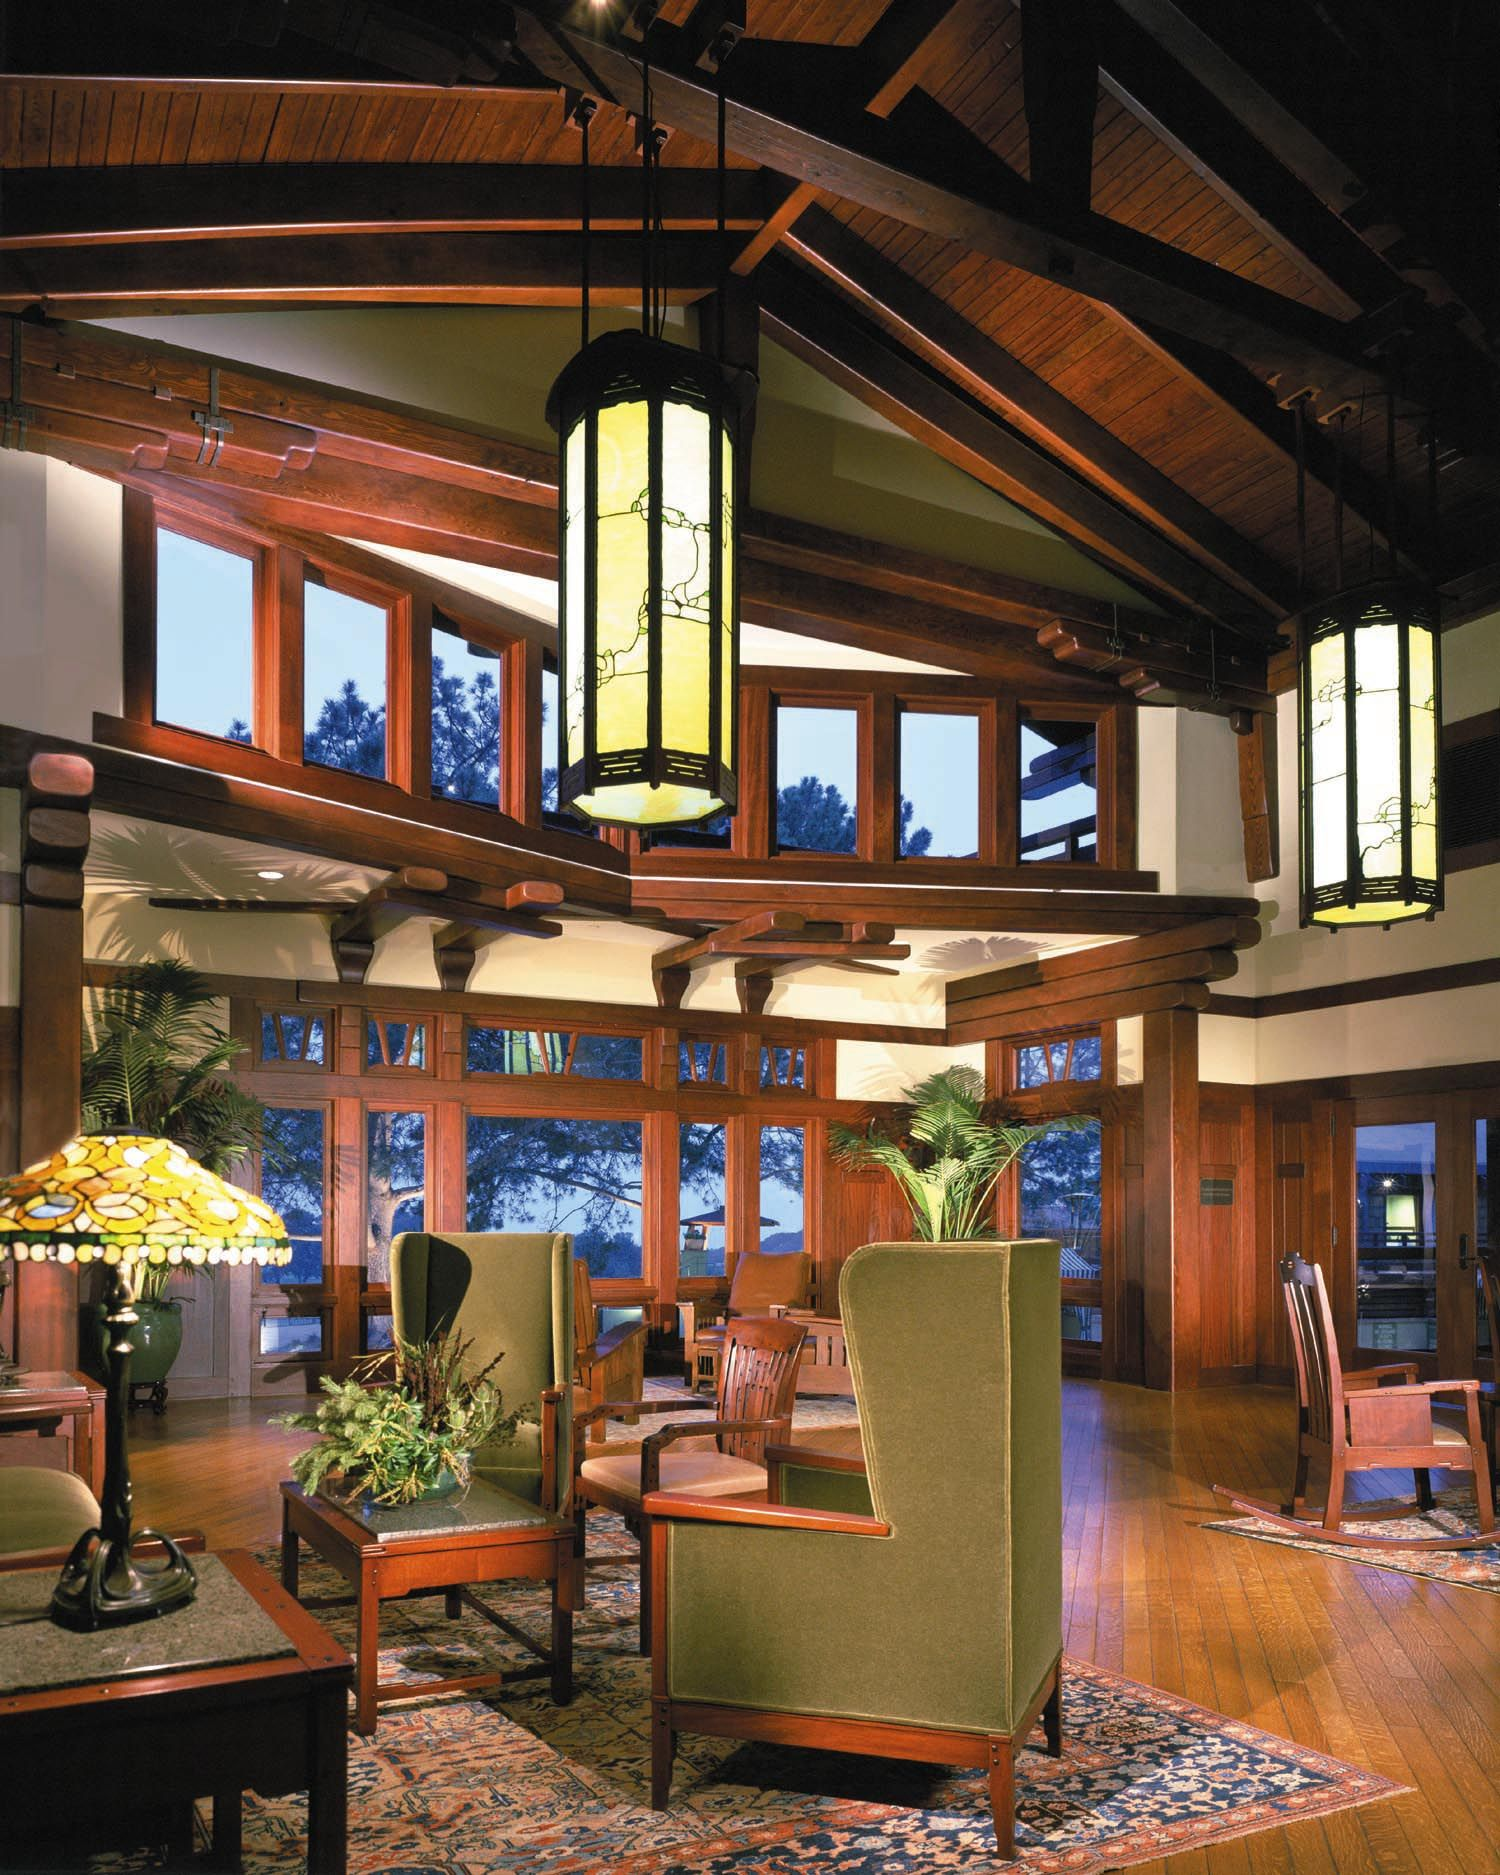 The Lodge At Torrey Pines Has Been Awarded Aaa 5 Diamond Rating For 10 Consecutive Years And Good Reason